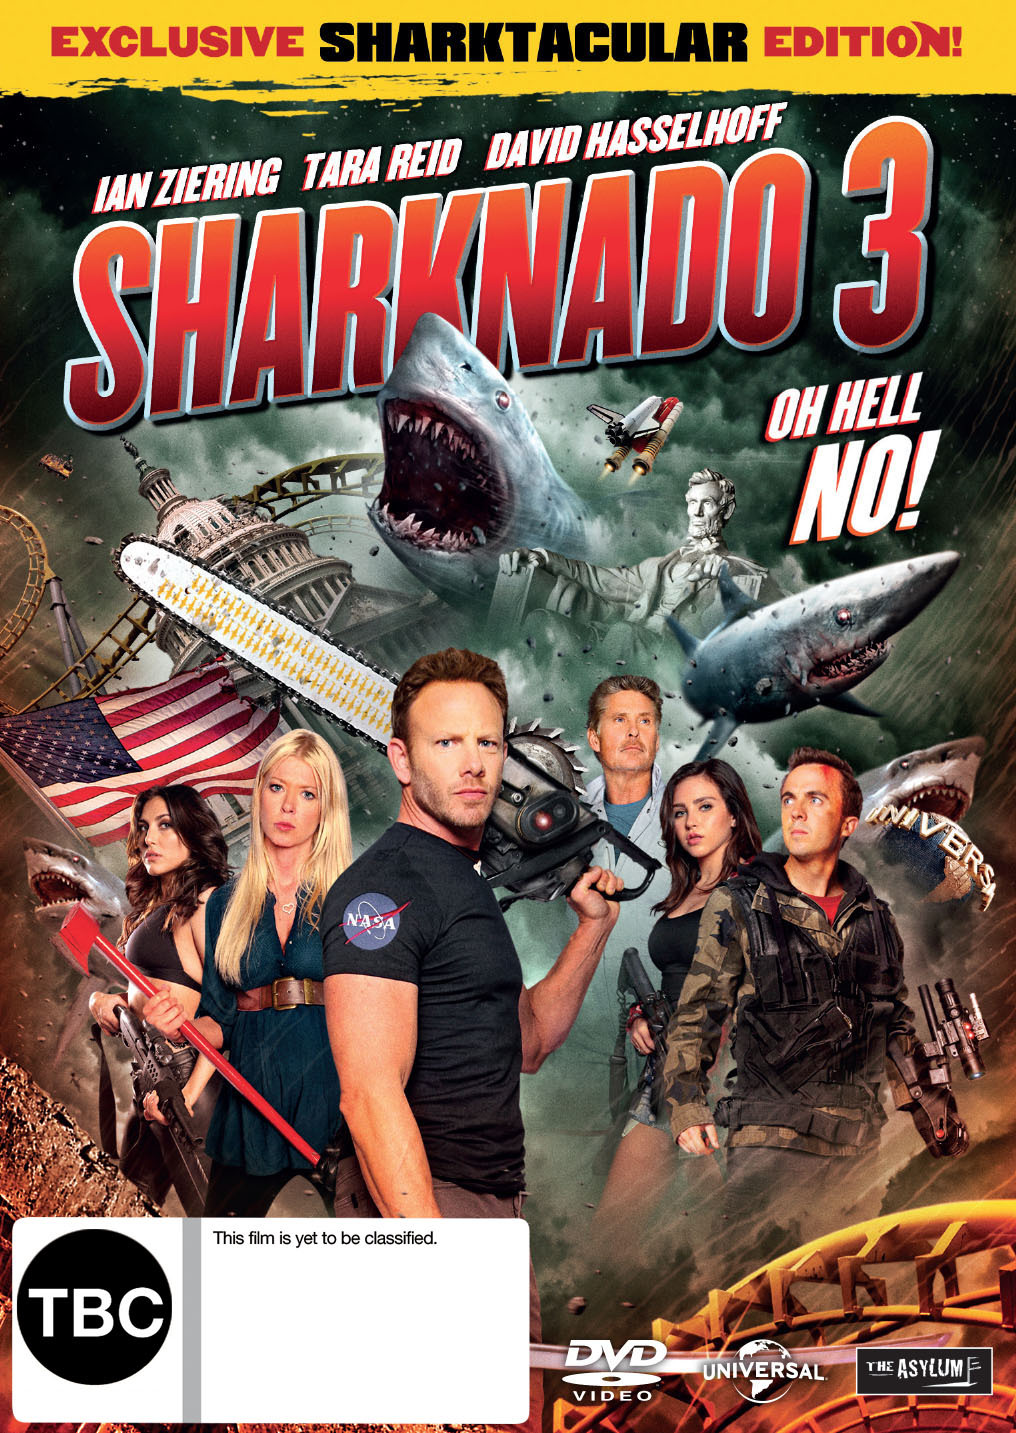 Sharknado 3 'Oh Hell No! on DVD image